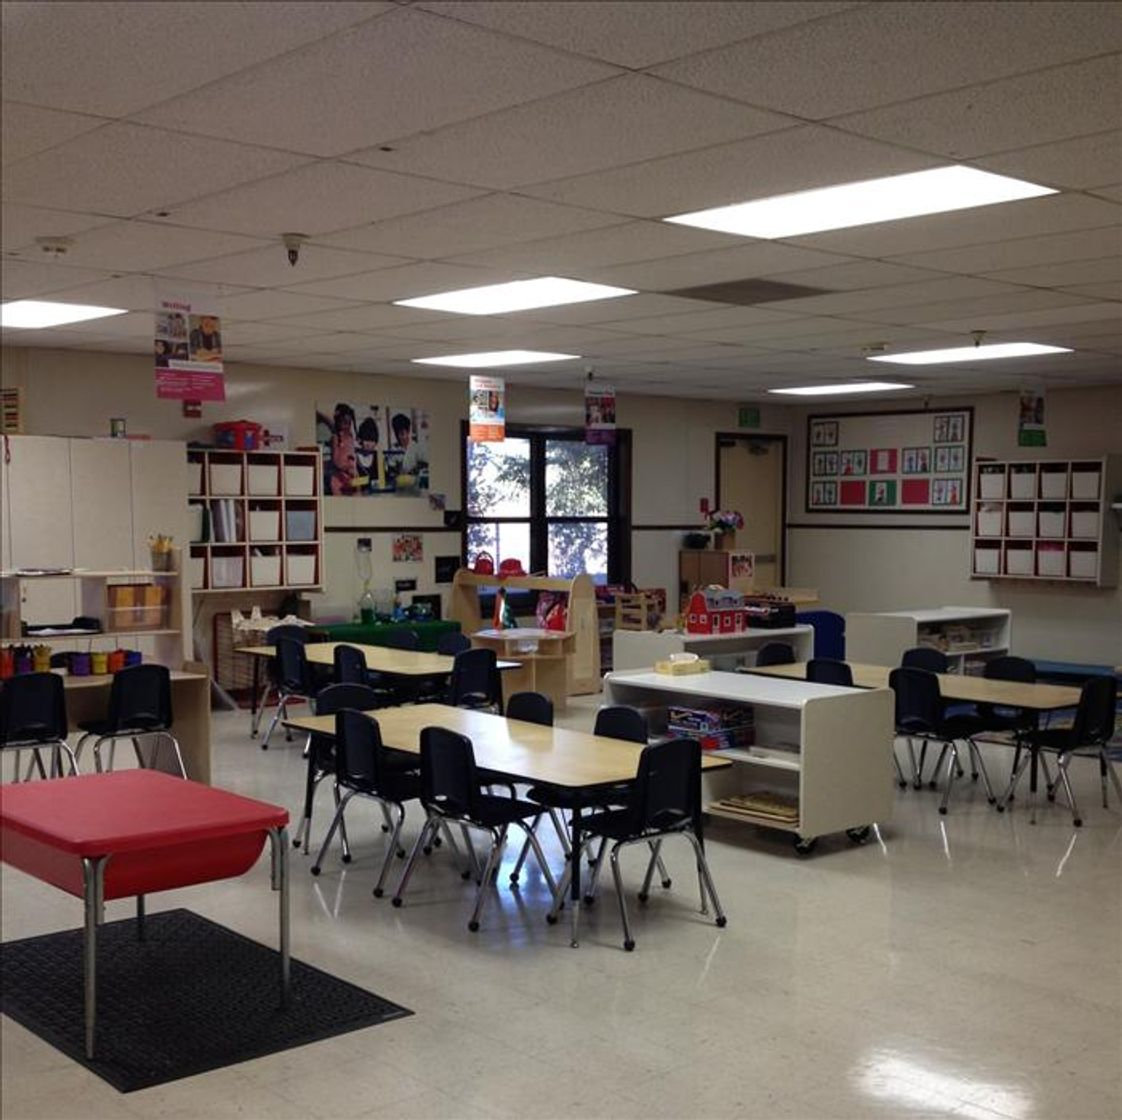 Morgan Hill KinderCare Photo #1 - Pre-Kindergarten Classroom